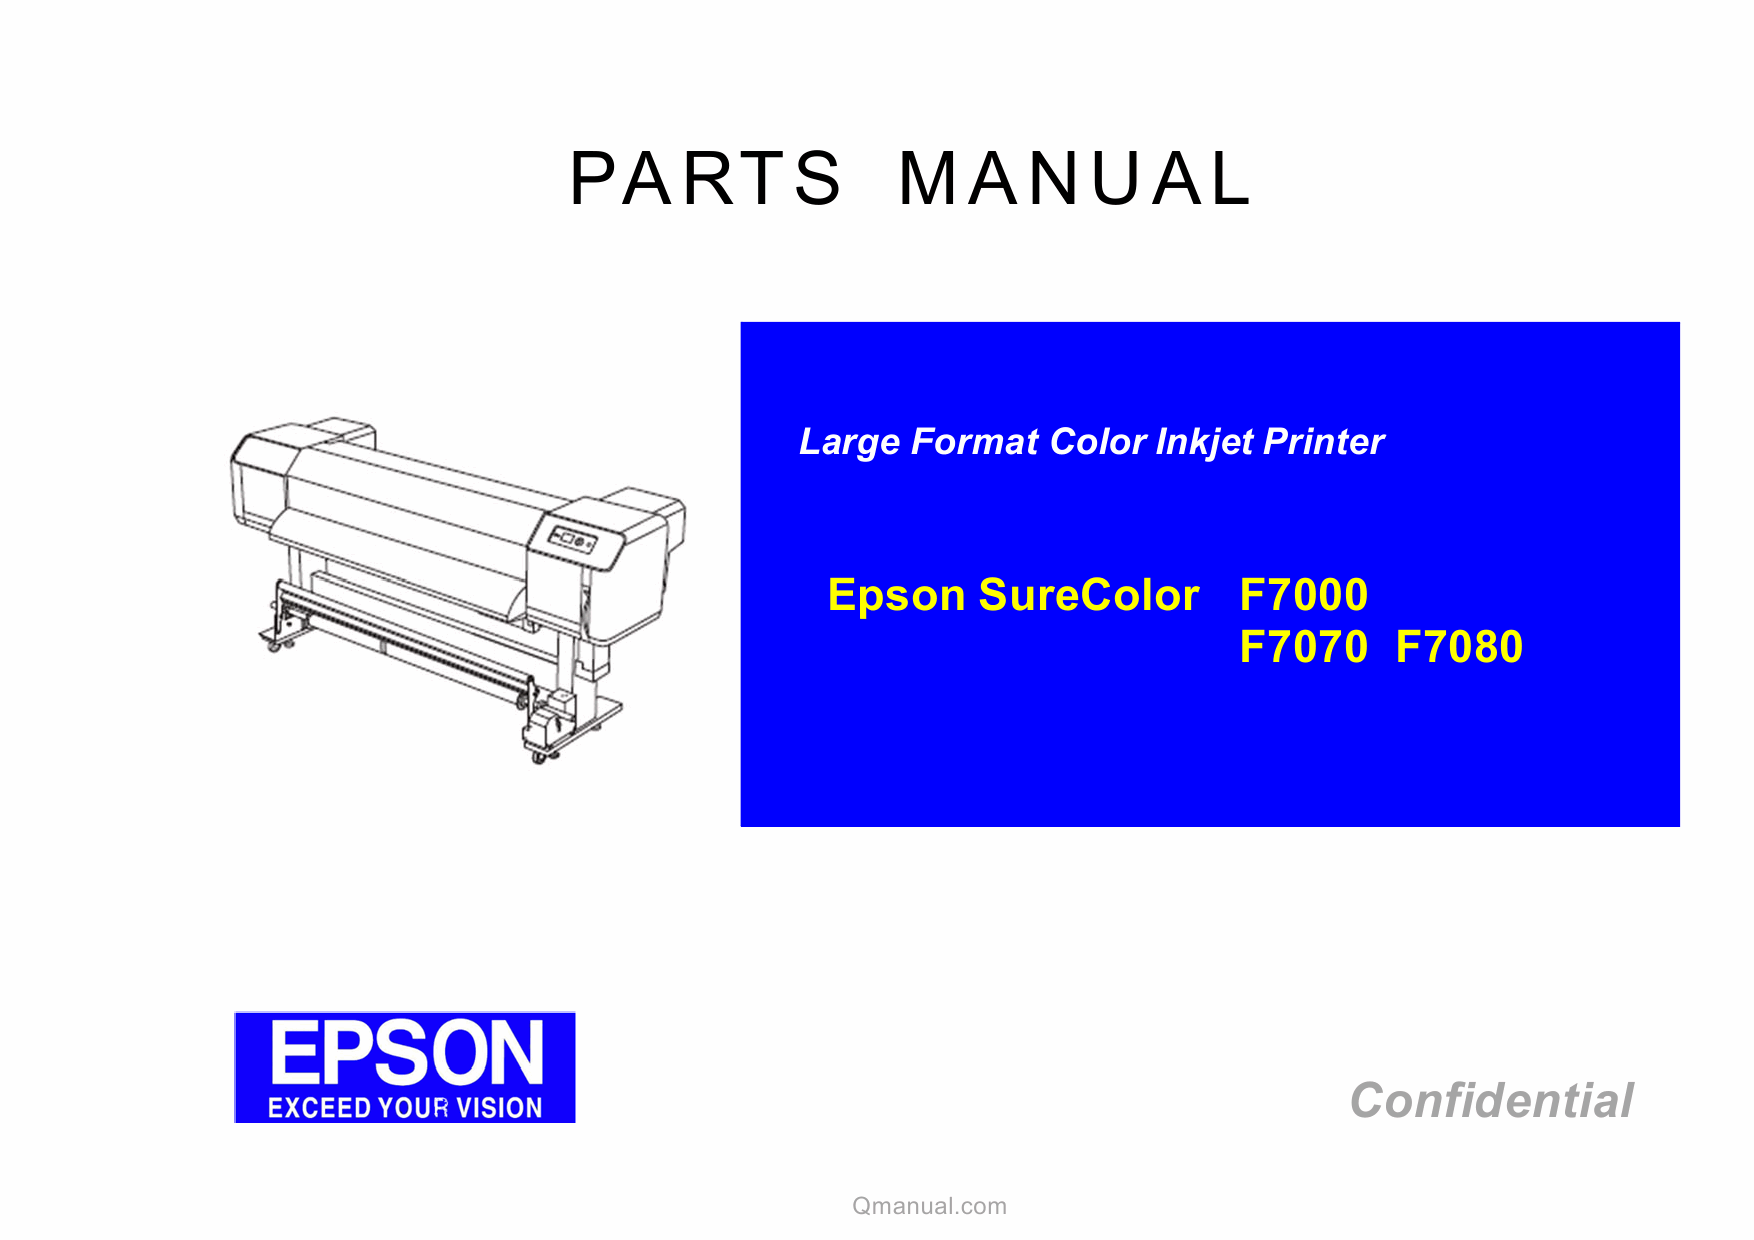 EPSON SureColor F7000 F7070 F7080 Parts Manual-1